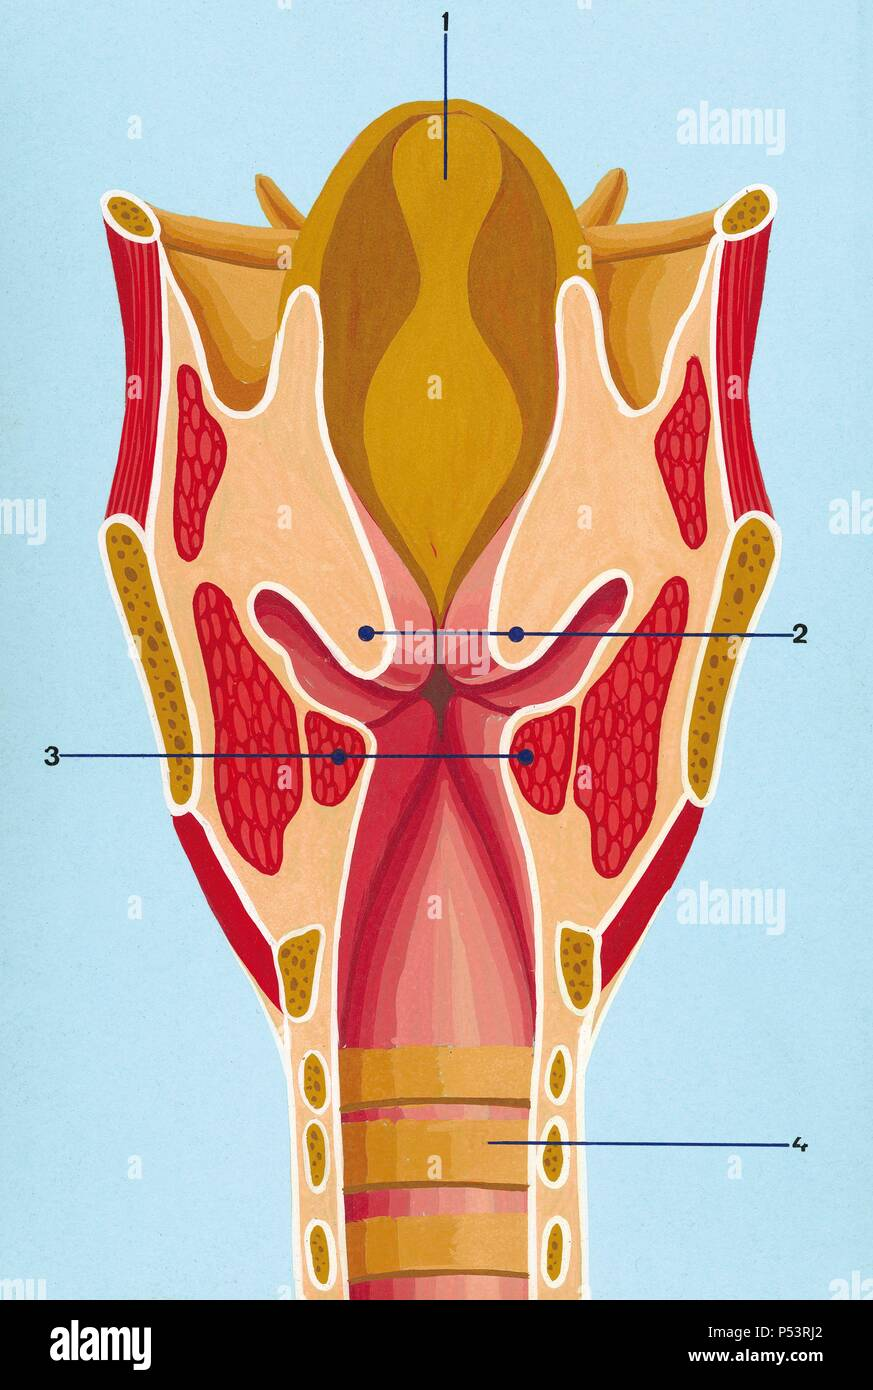 hight resolution of respiratory system schematic drawing of the front section of the larynx 1 epiglottis 2 vocal folds above 3 vocal folds below 4 trachea drawing